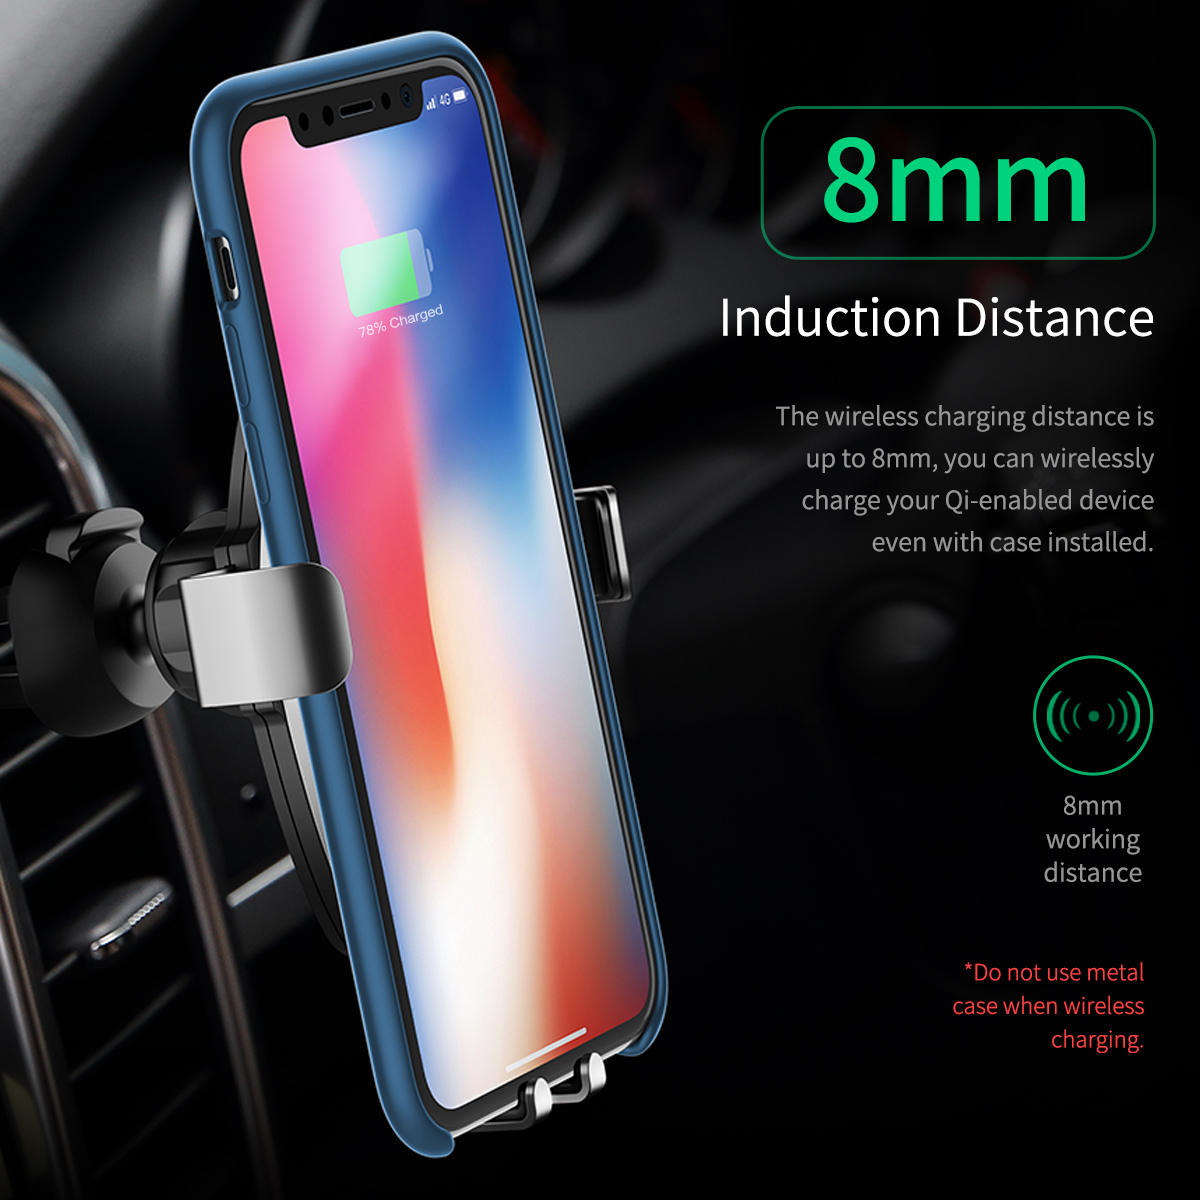 HTB1SFIkB5OYBuNjSsD4q6zSkFXaG - 10W QI Wireless Car Charger Gravity Holder , ROCK for iPhone X 8 Plus Samsung Galaxy S8 S7 Note 8 Quick Charge Charging Stand